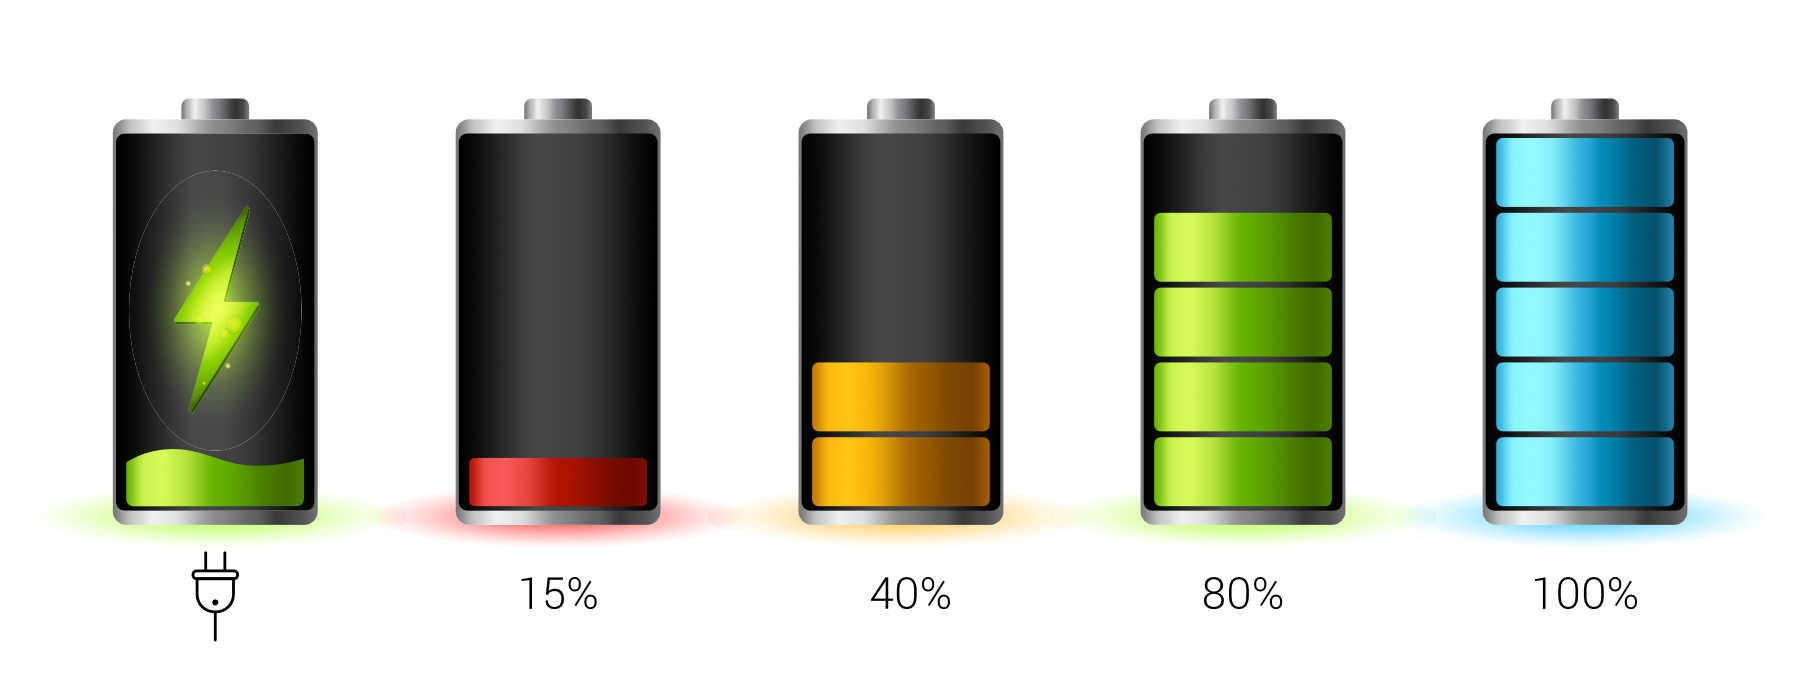 Why Batteries Die Quicker in Cold Weather 1